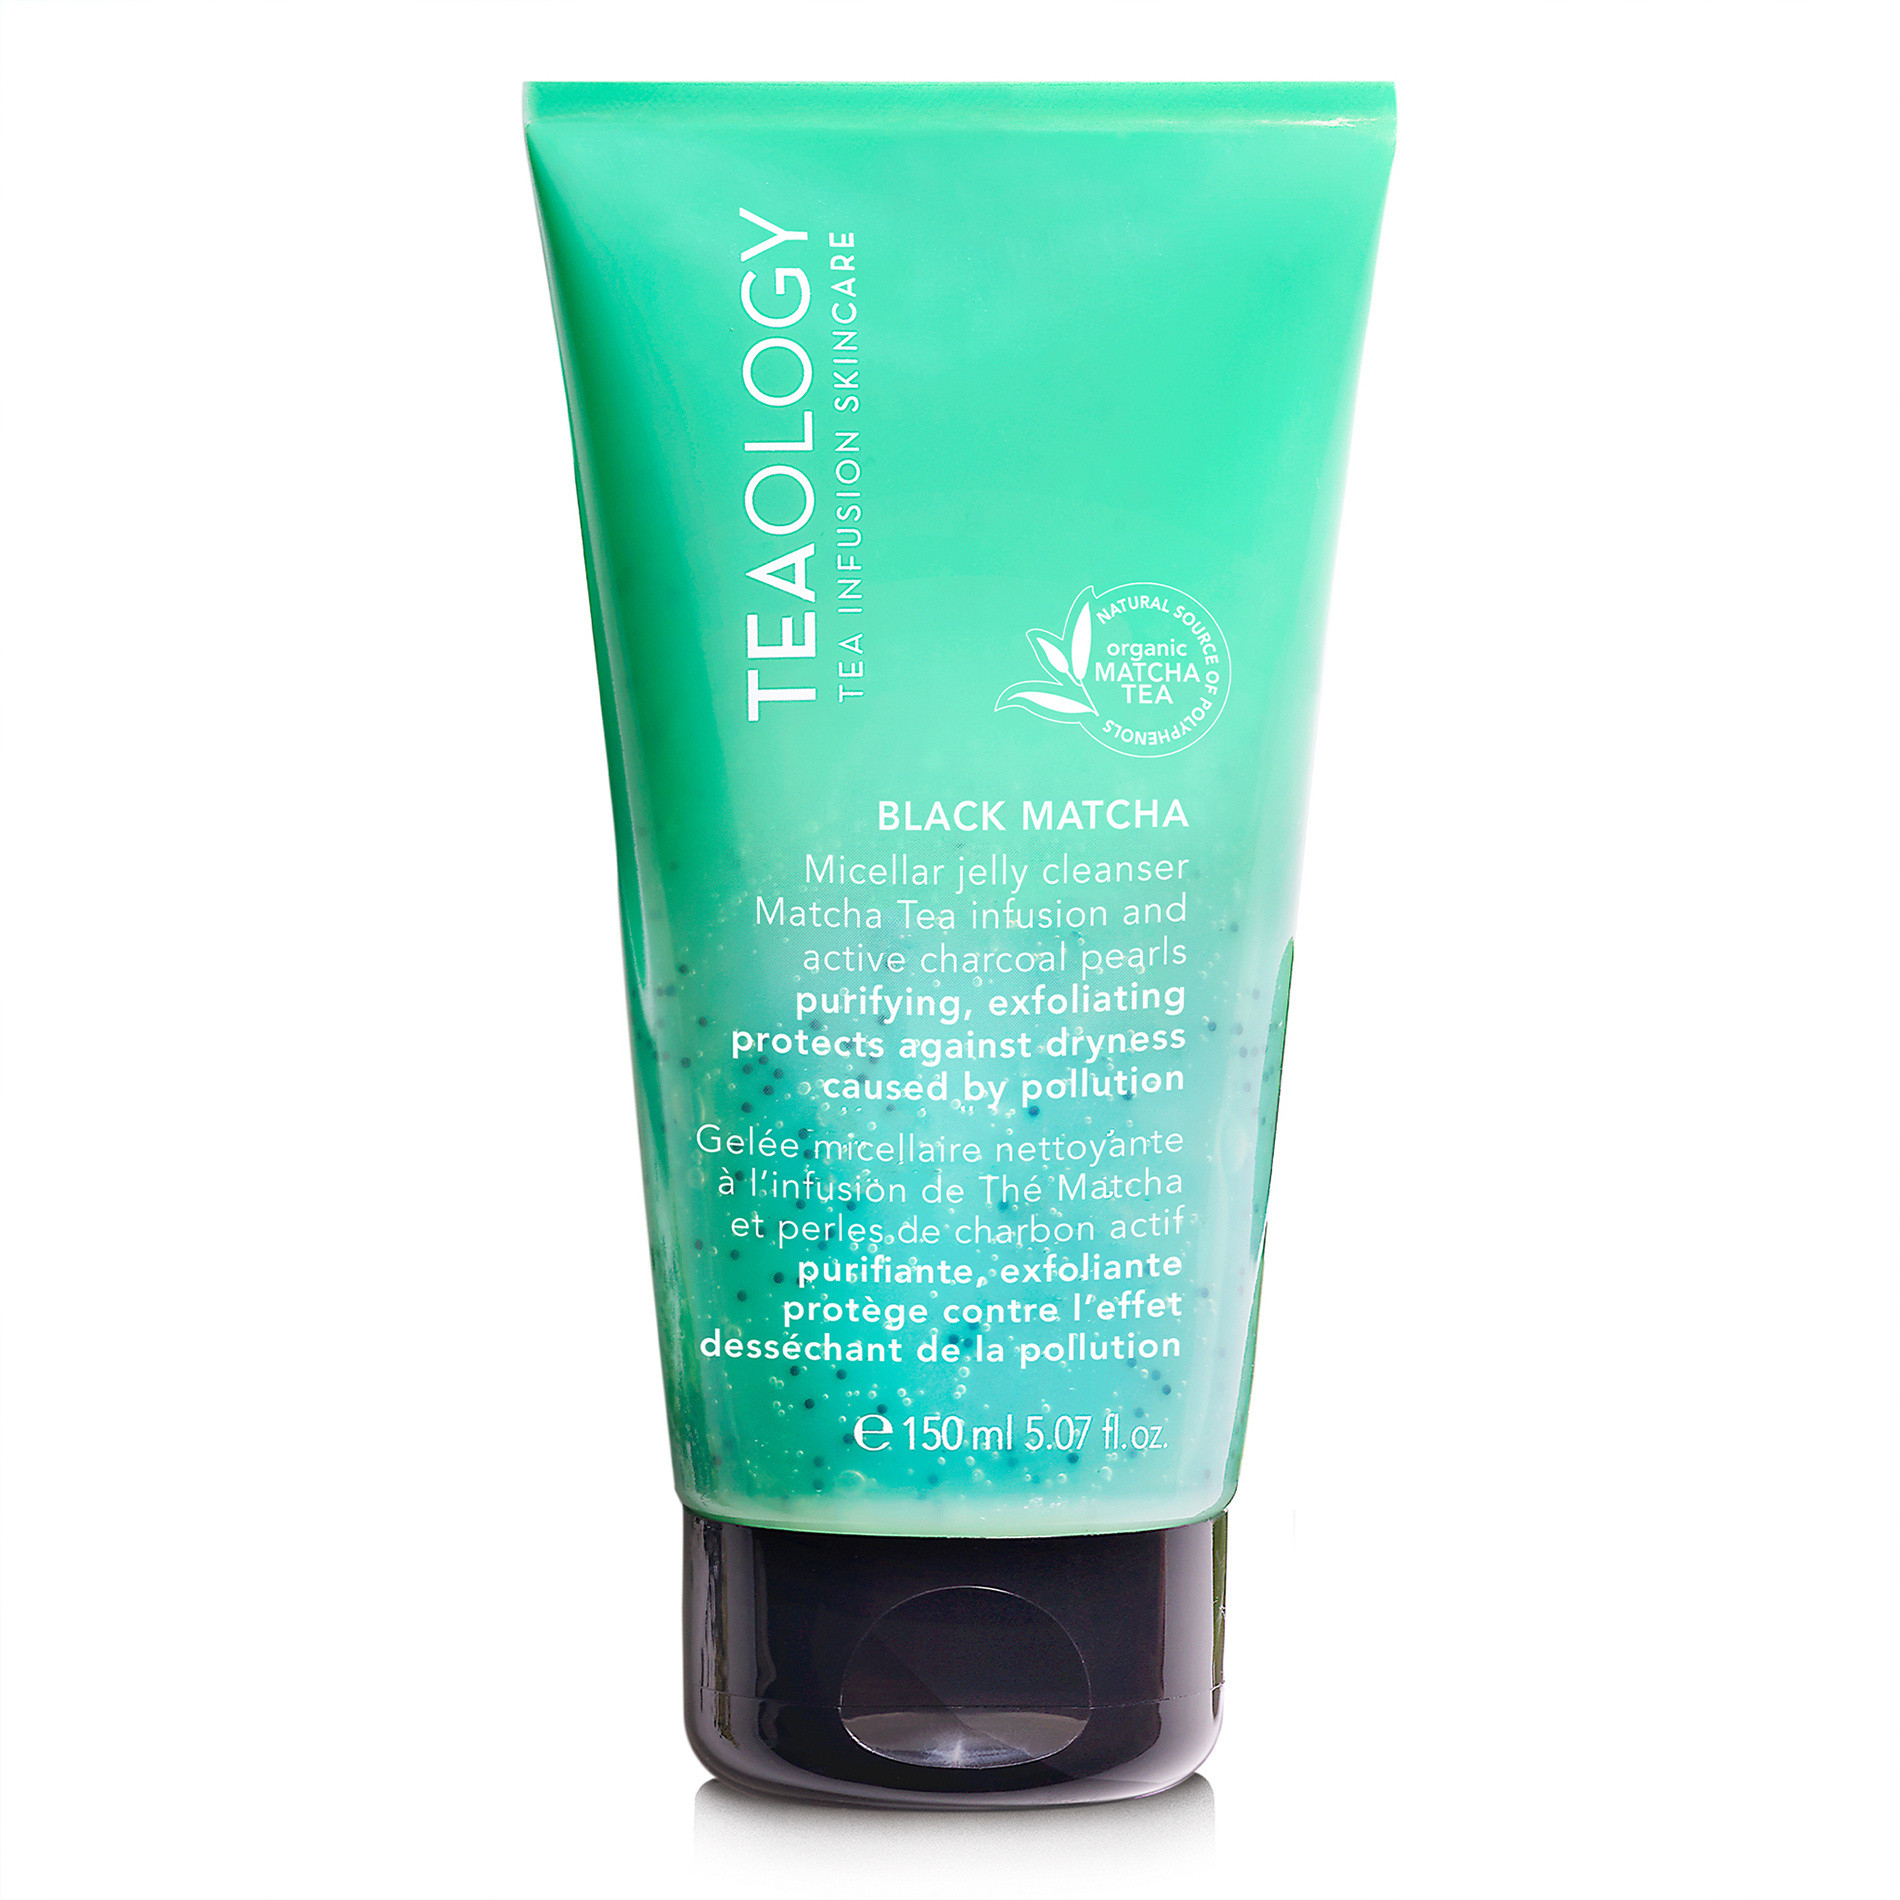 Teaology Black Matcha Micellar Jelly Cleanser 150 ml, Verde, large image number 0